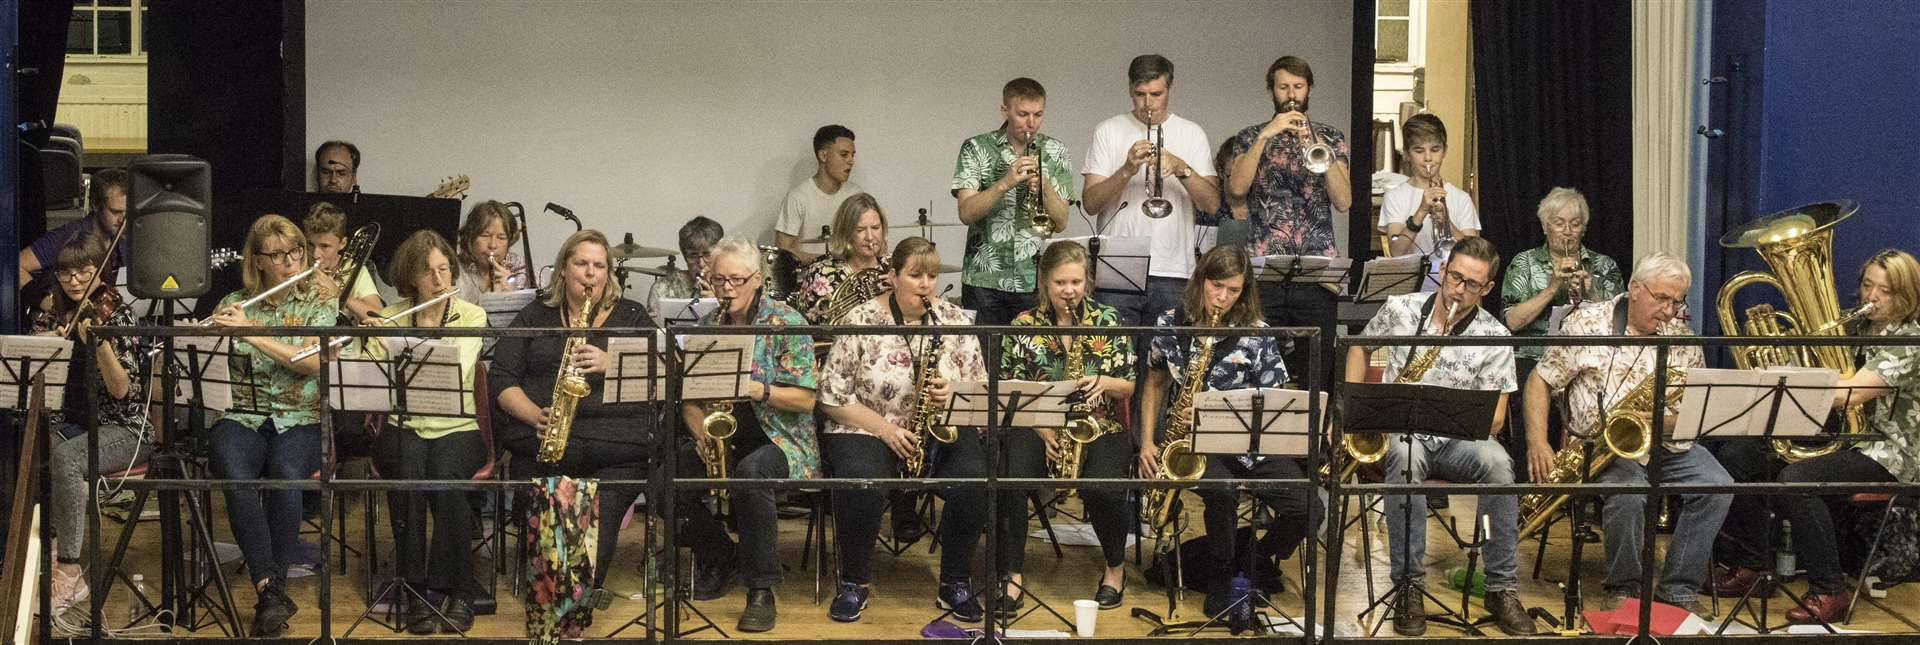 Linton Jazz playing at the Marven Centre, Sawston in October 2018. Contributed picture